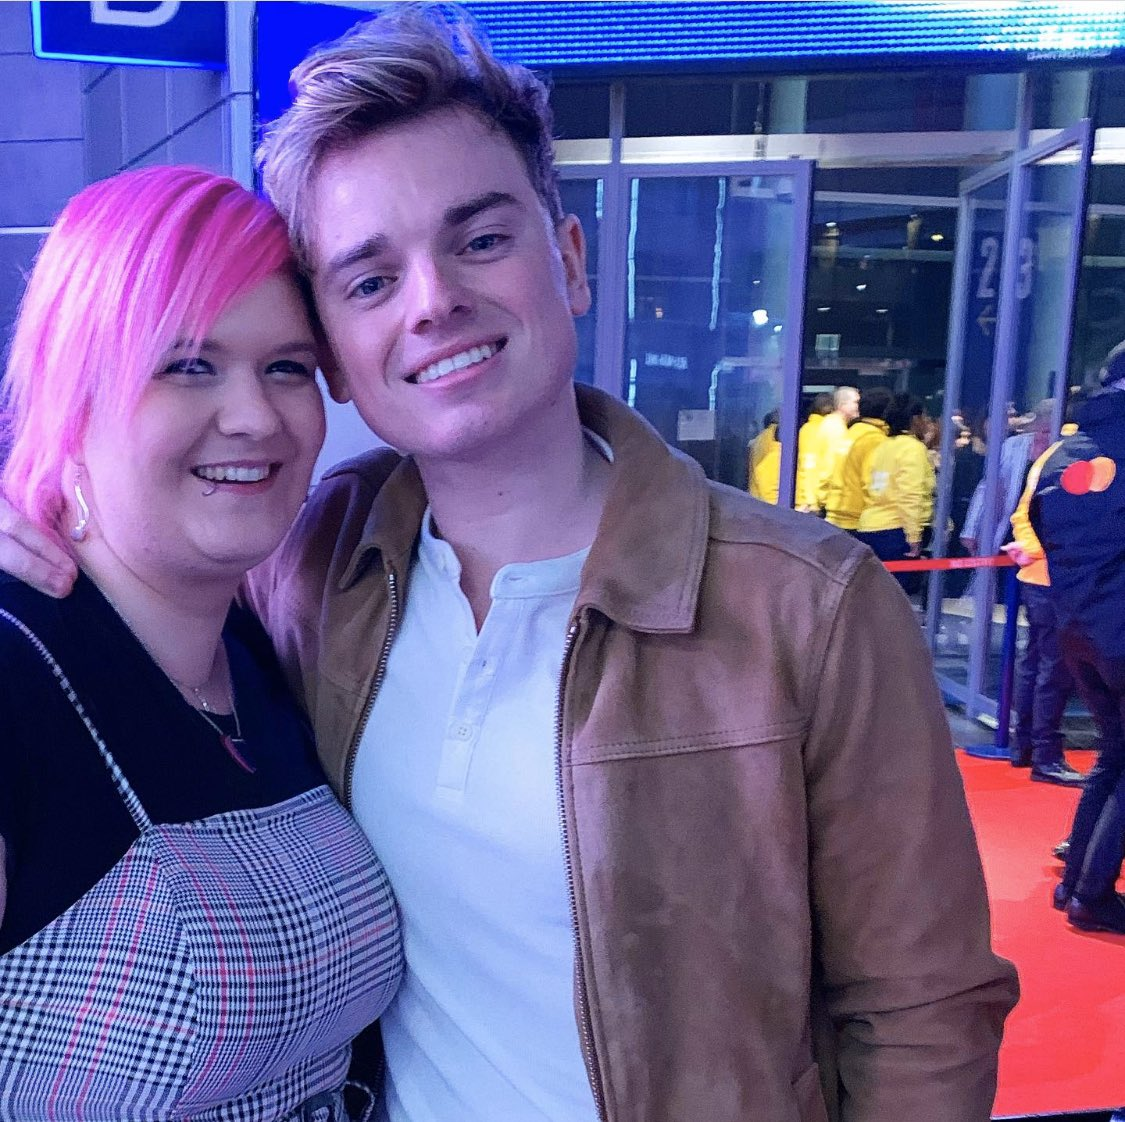 I thought I am #daydreaming -never in a #millionyears did I think I would actually meet @Jack_Maynard23 one day.He was ever so #lovely ,had a small talk with me&then went off with his mates to the #aftershowparty ! #thankyousomuch for your time!  #aboutlastnight #BritAwards2020pic.twitter.com/GGRcD1vRAE